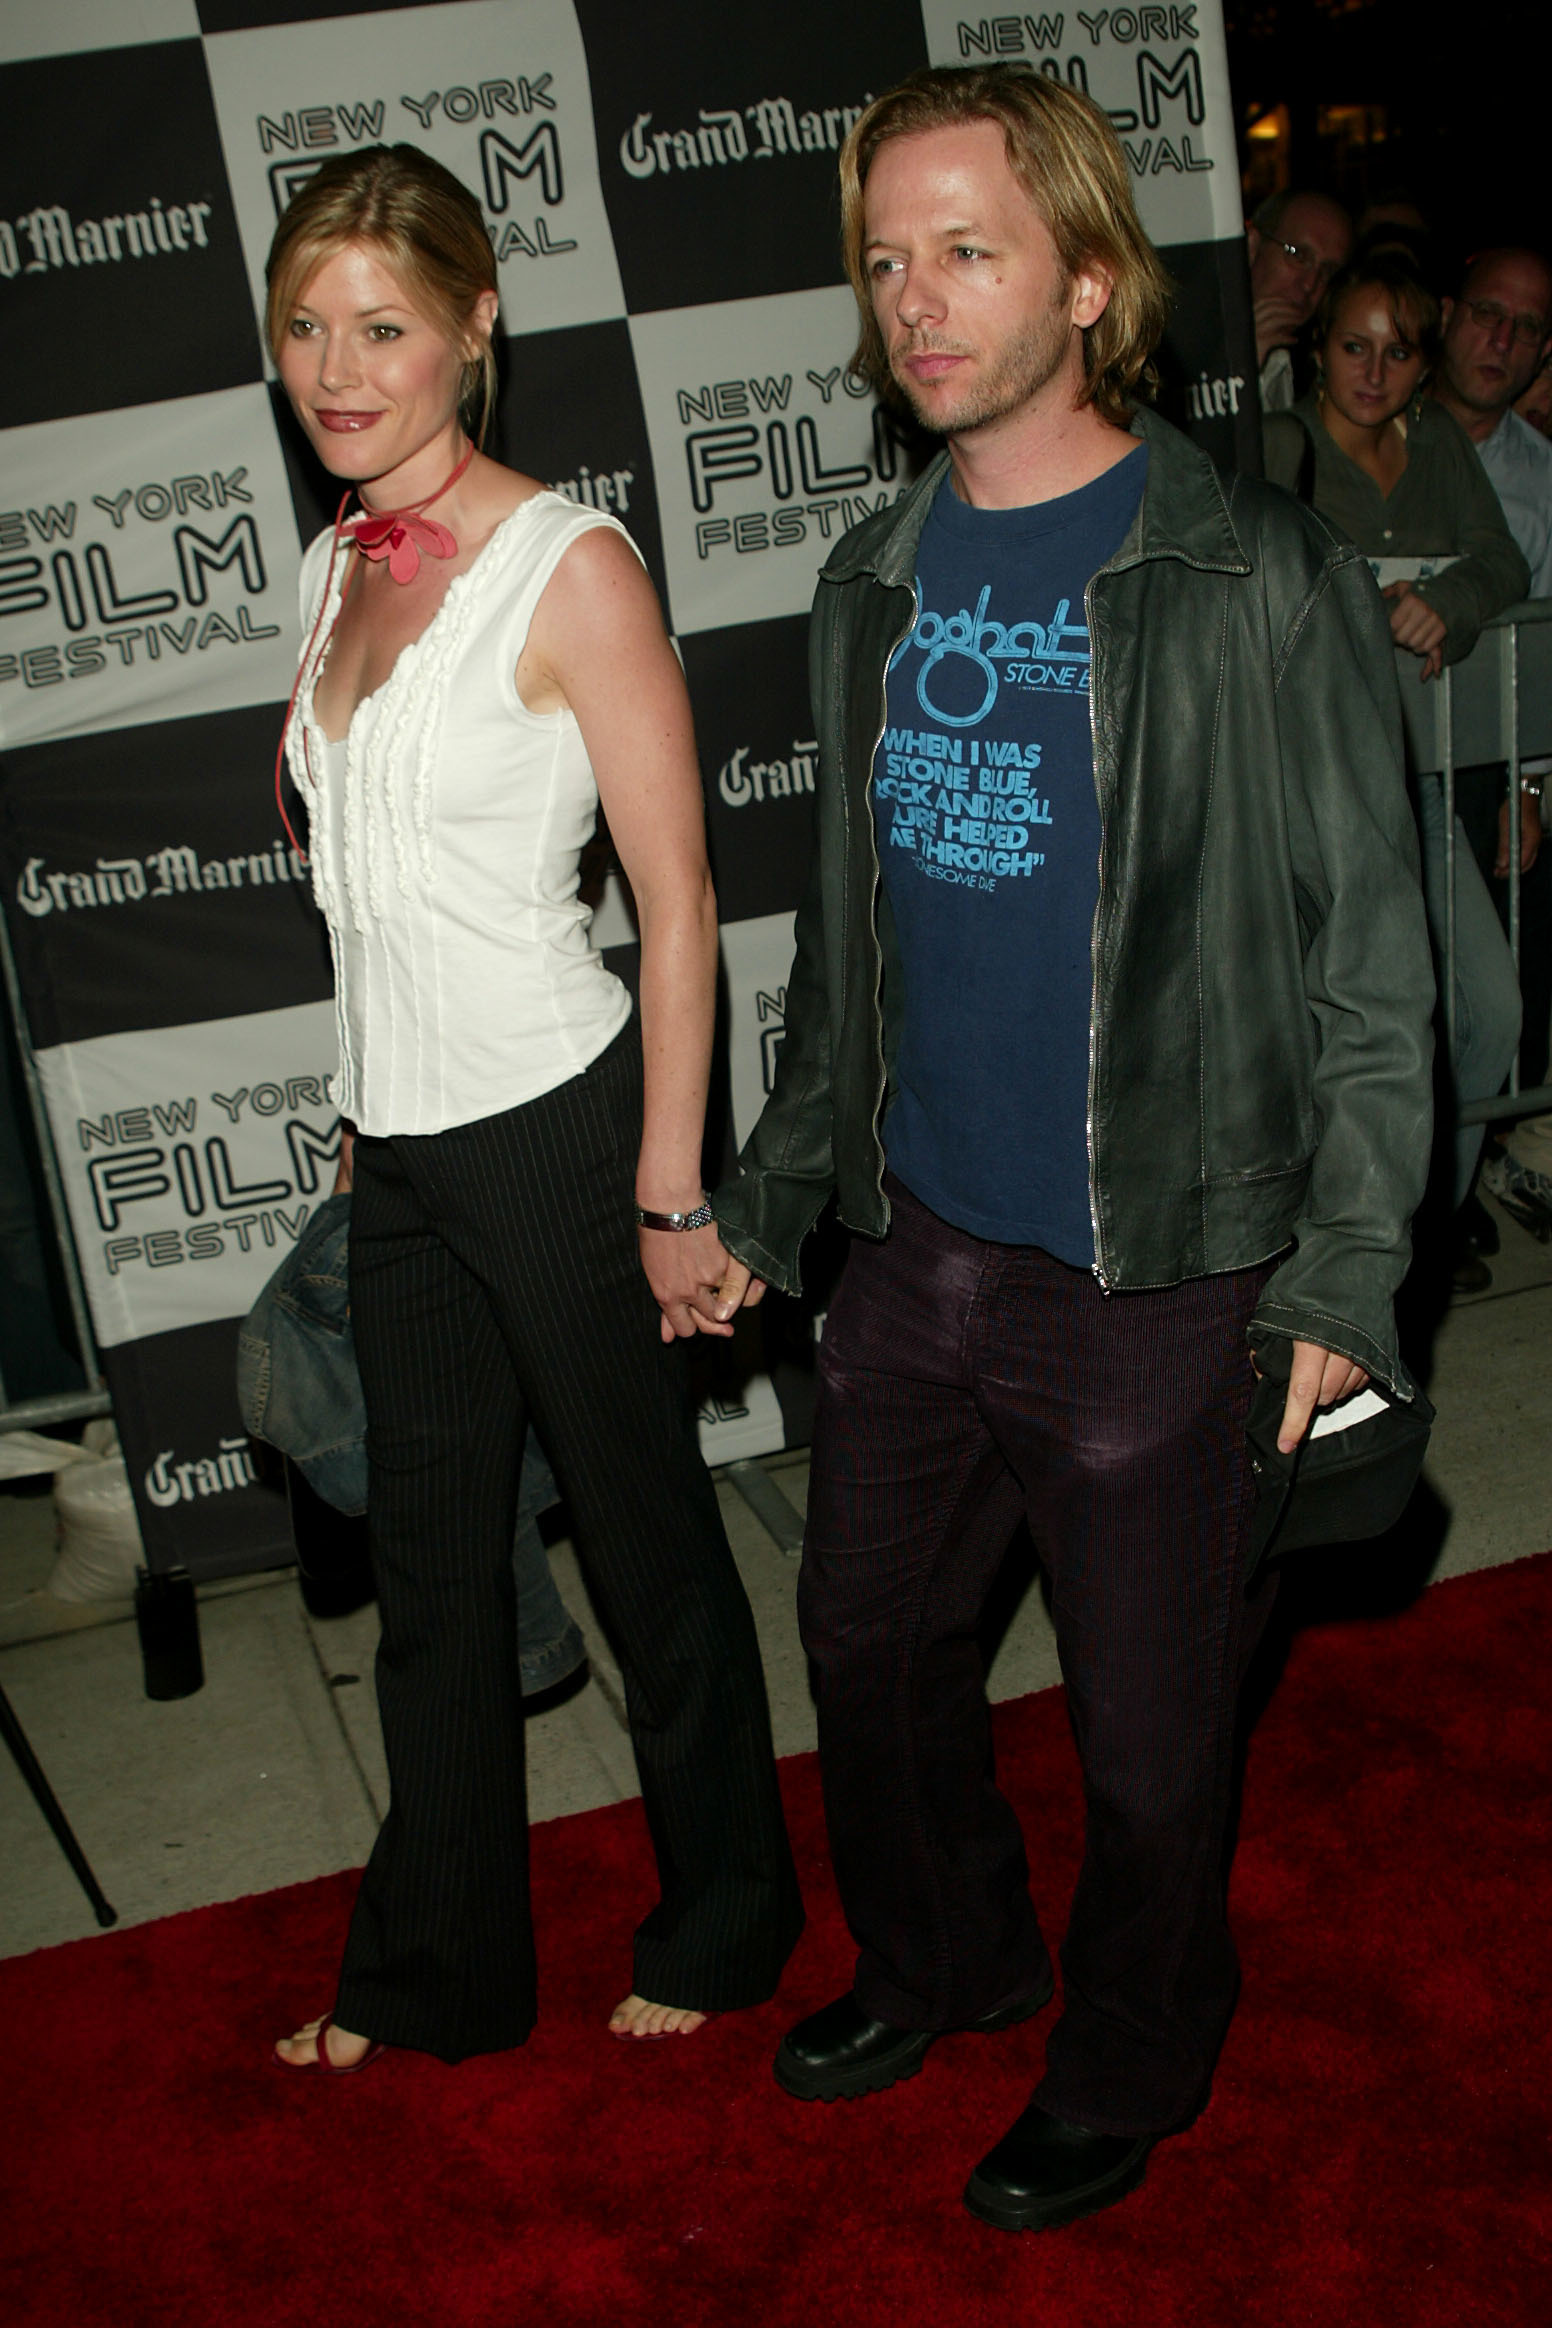 """Julie Bowen and David Spade are pictured at the """"Punch Drunk Love"""" screening during the 40th Annual New York Film Festival sponsored by Grand Marnier at Alice Tully Hall at Lincoln Center in New York City on Oct. 5, 2002."""